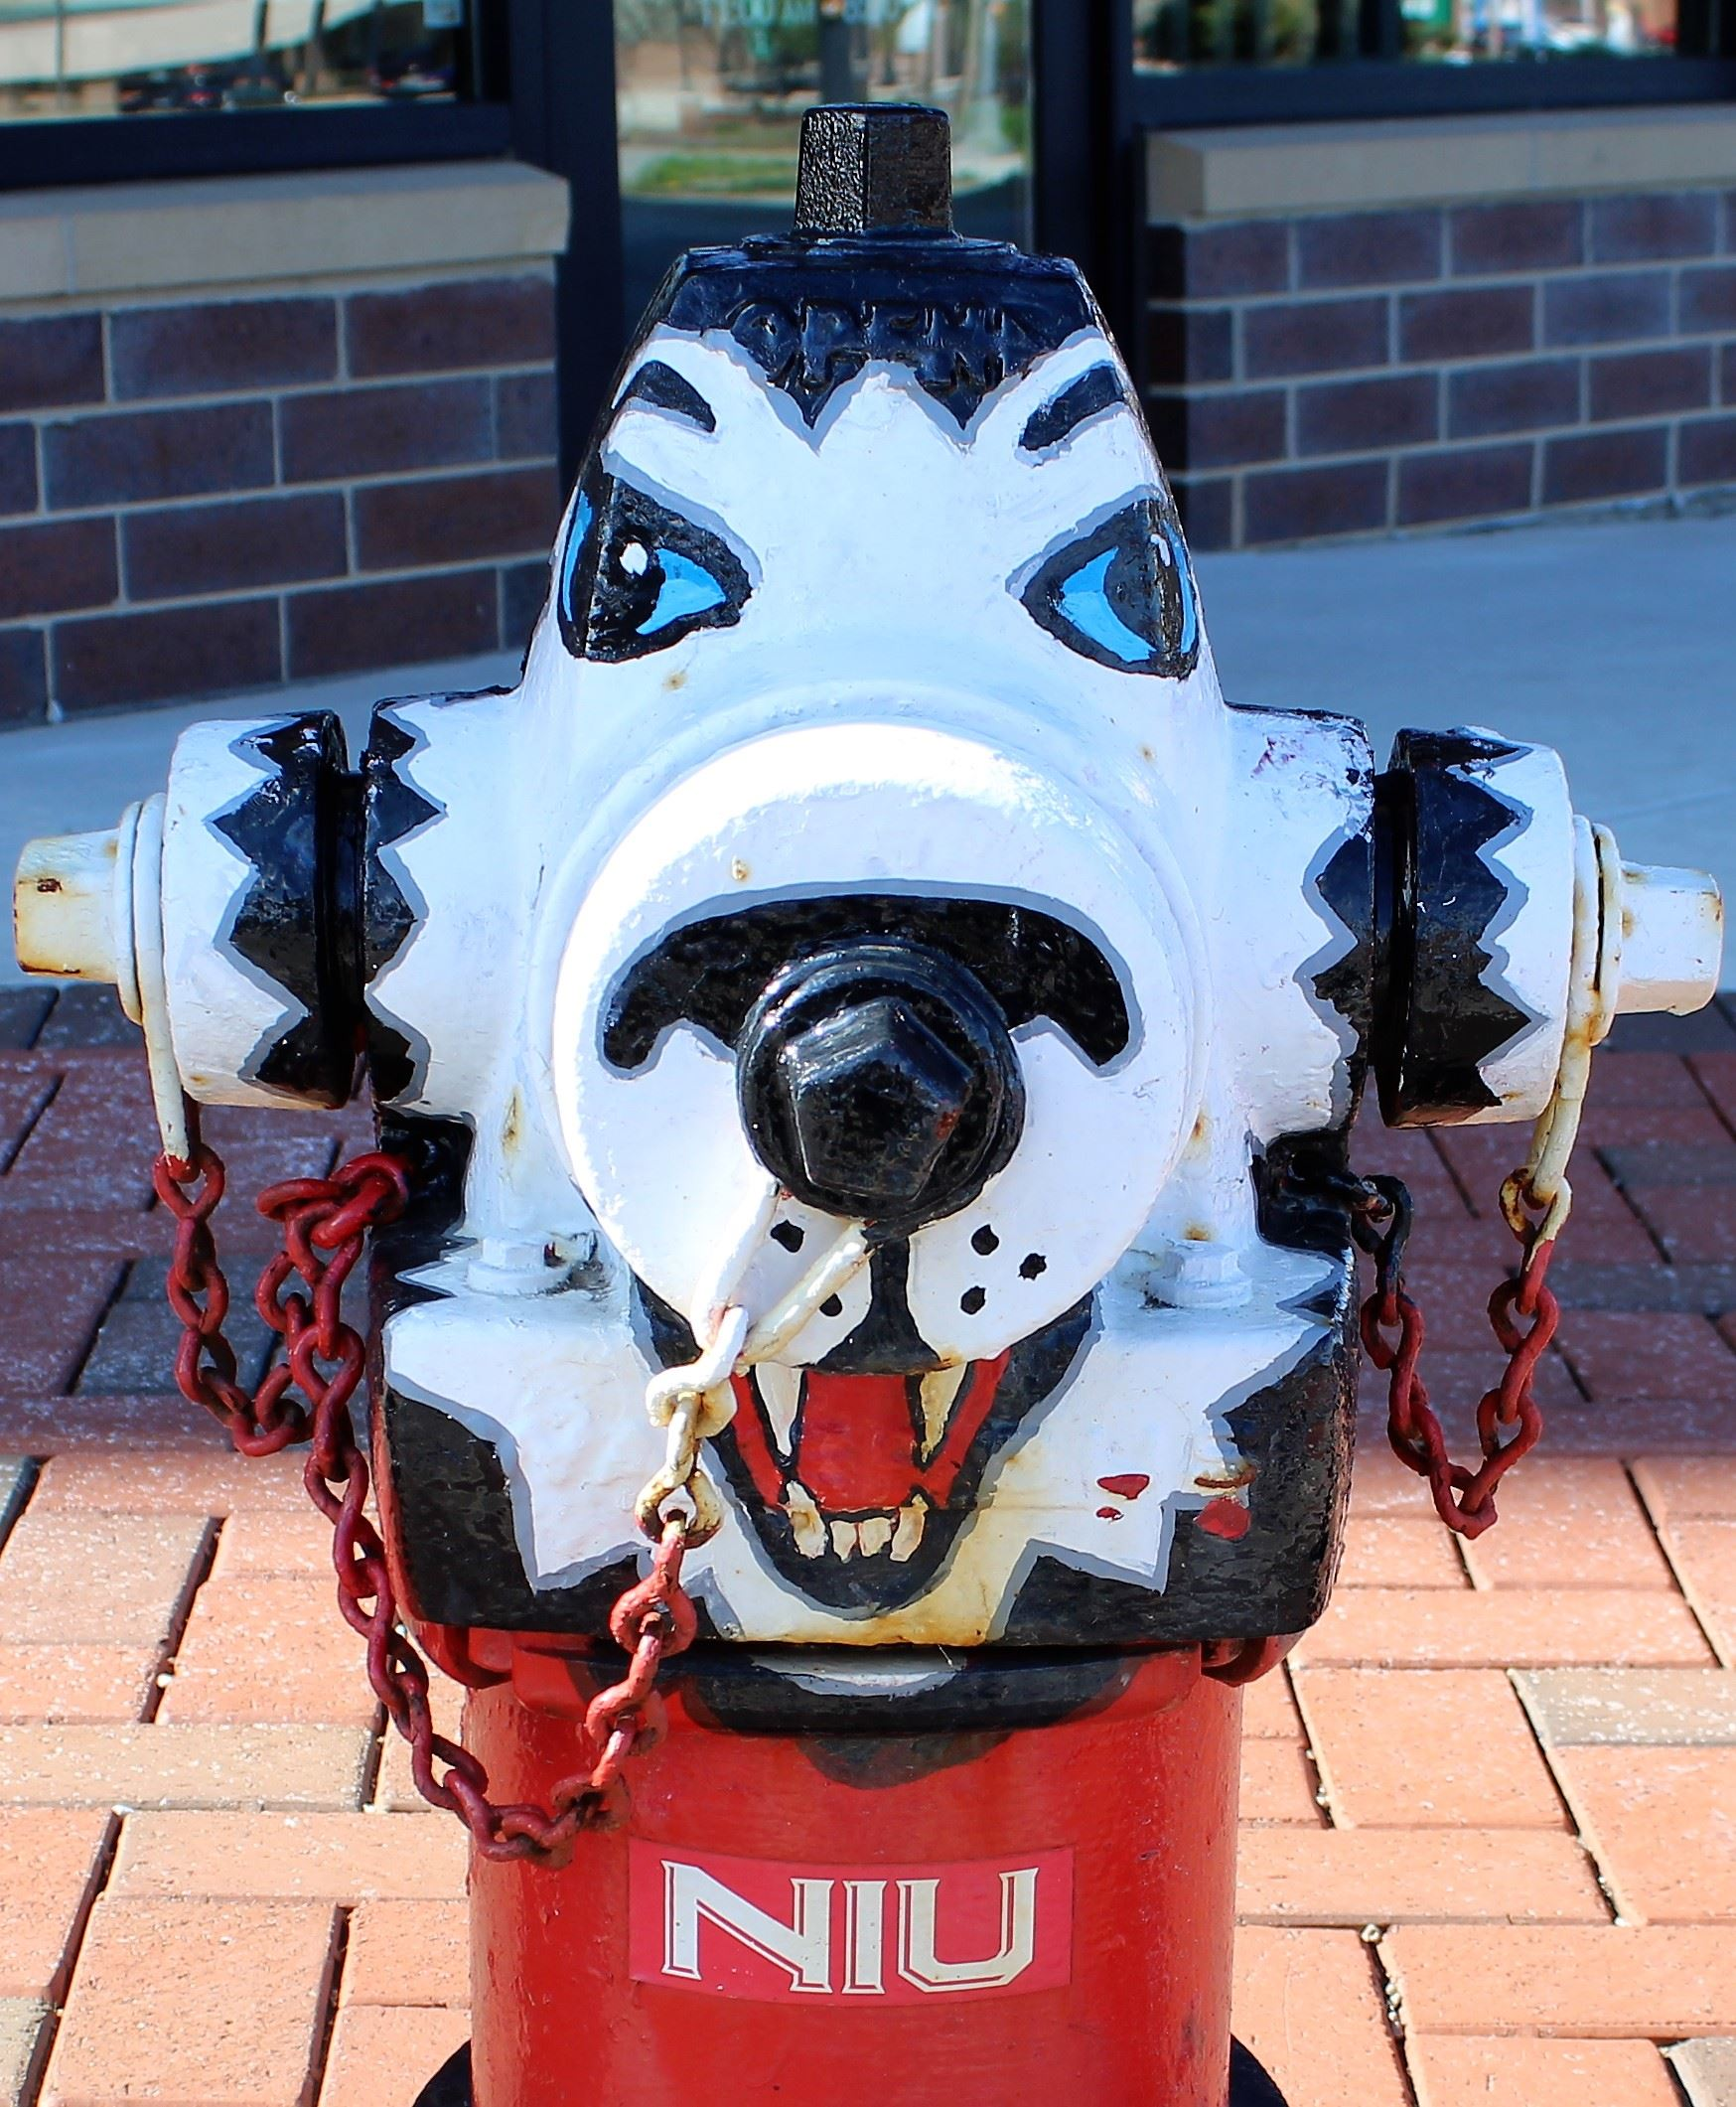 An NIU Huskie is painted on a downtown fire hydrant